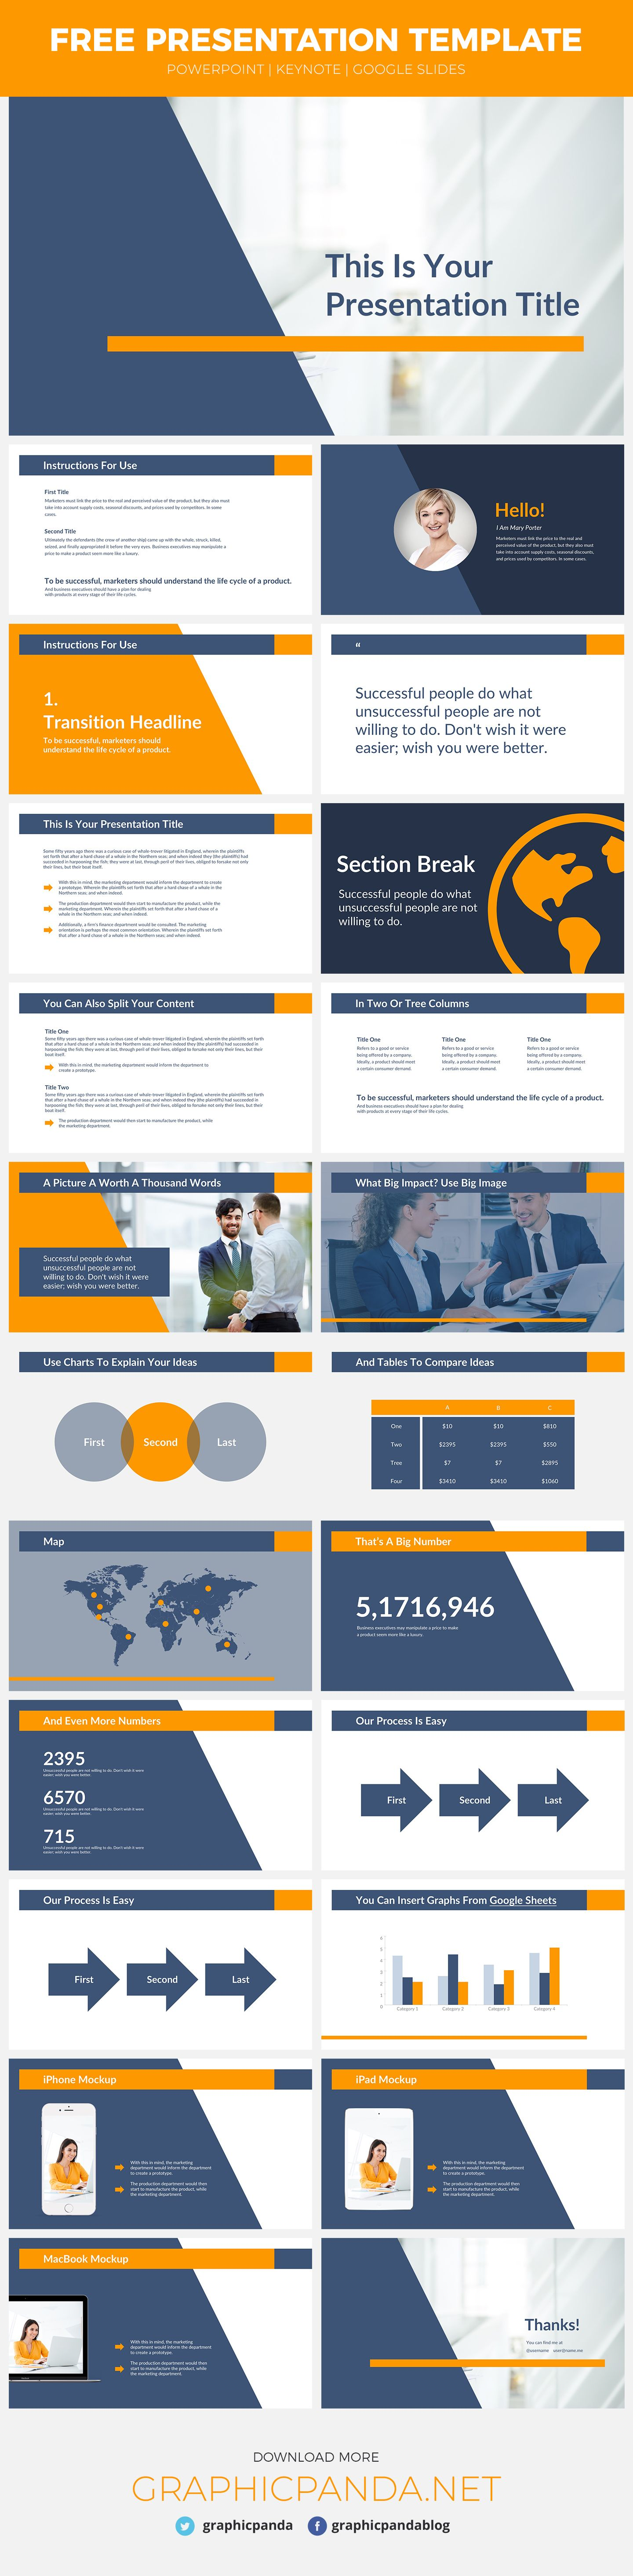 The Muse Free Powerpoint Template Was Created To Save You A Lot Of